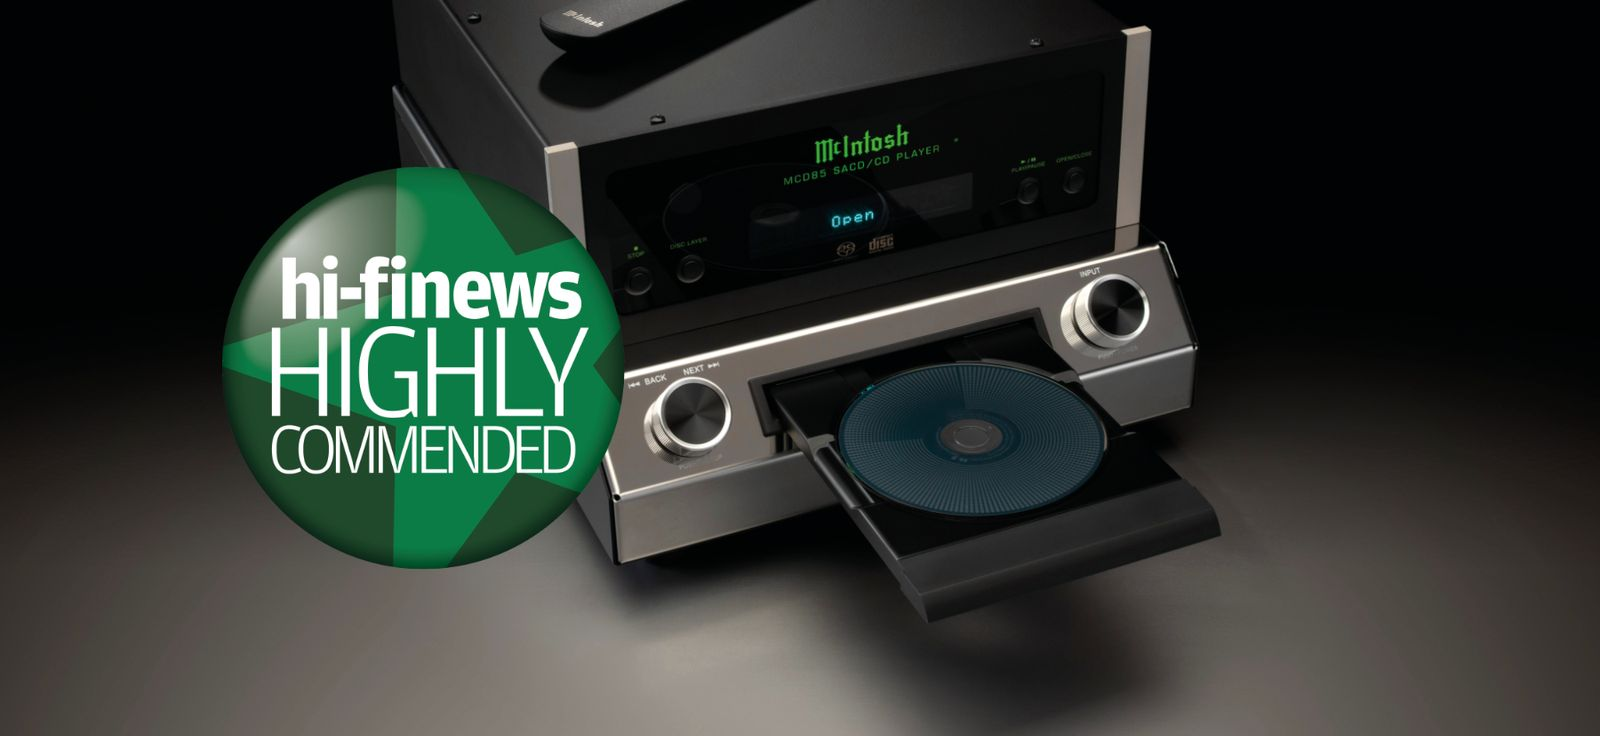 """Hi-Fi News reviews the new McIntosh MCD85 CD/SACD player and says it's """"a persuasive way of doing what it sets out to achieve"""""""